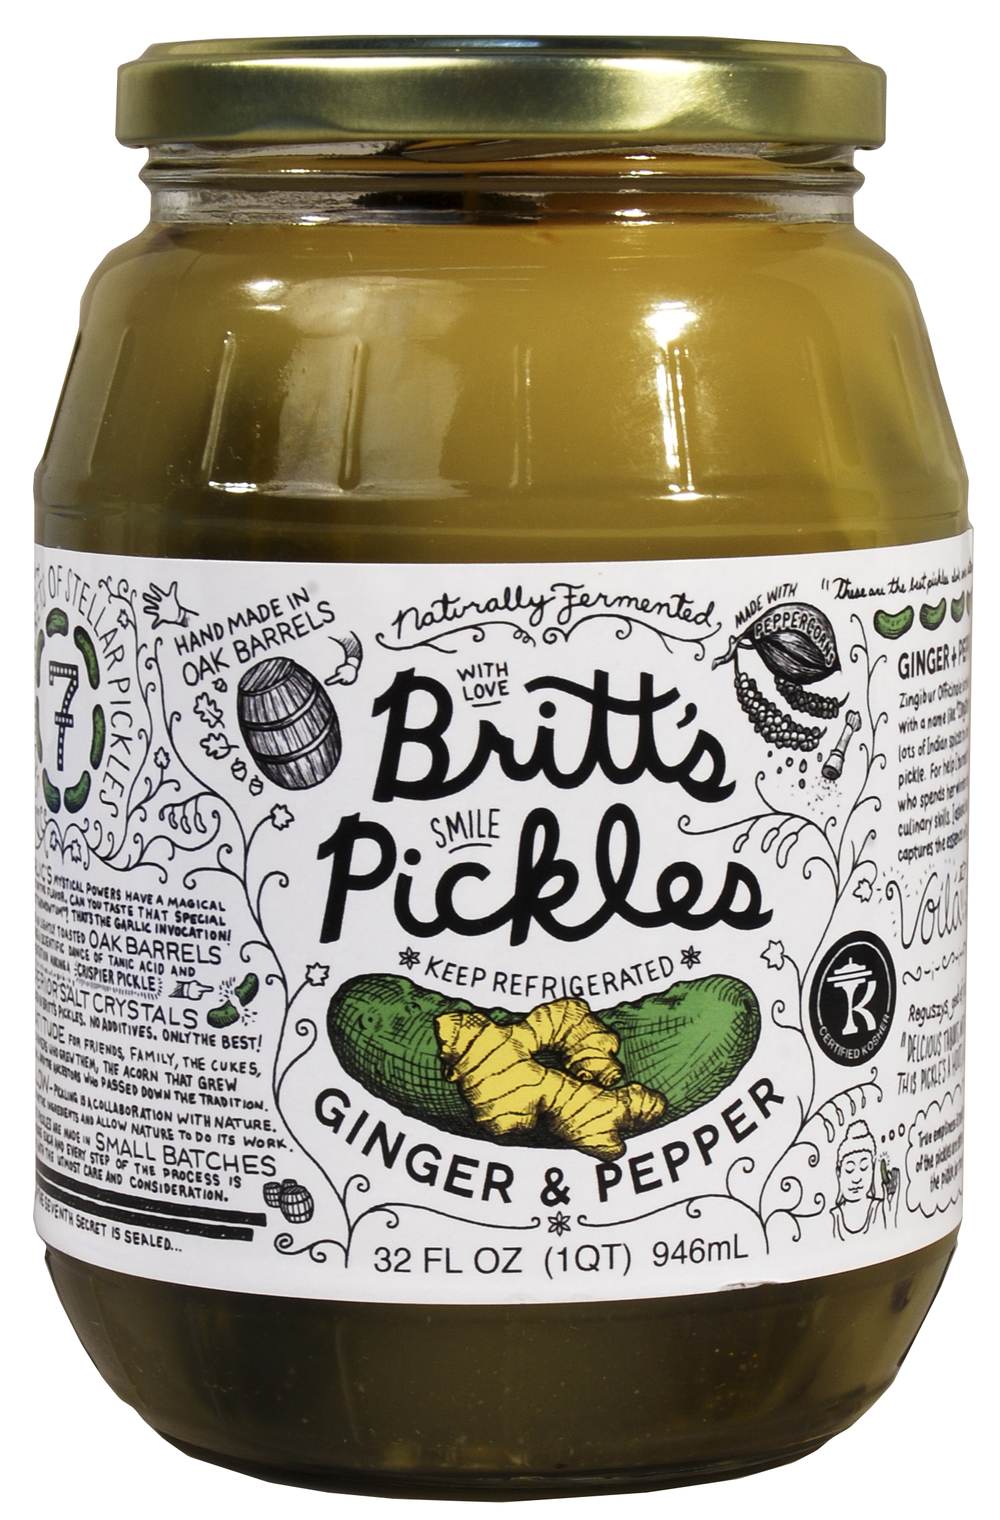 Ginger & Pepper Pickles